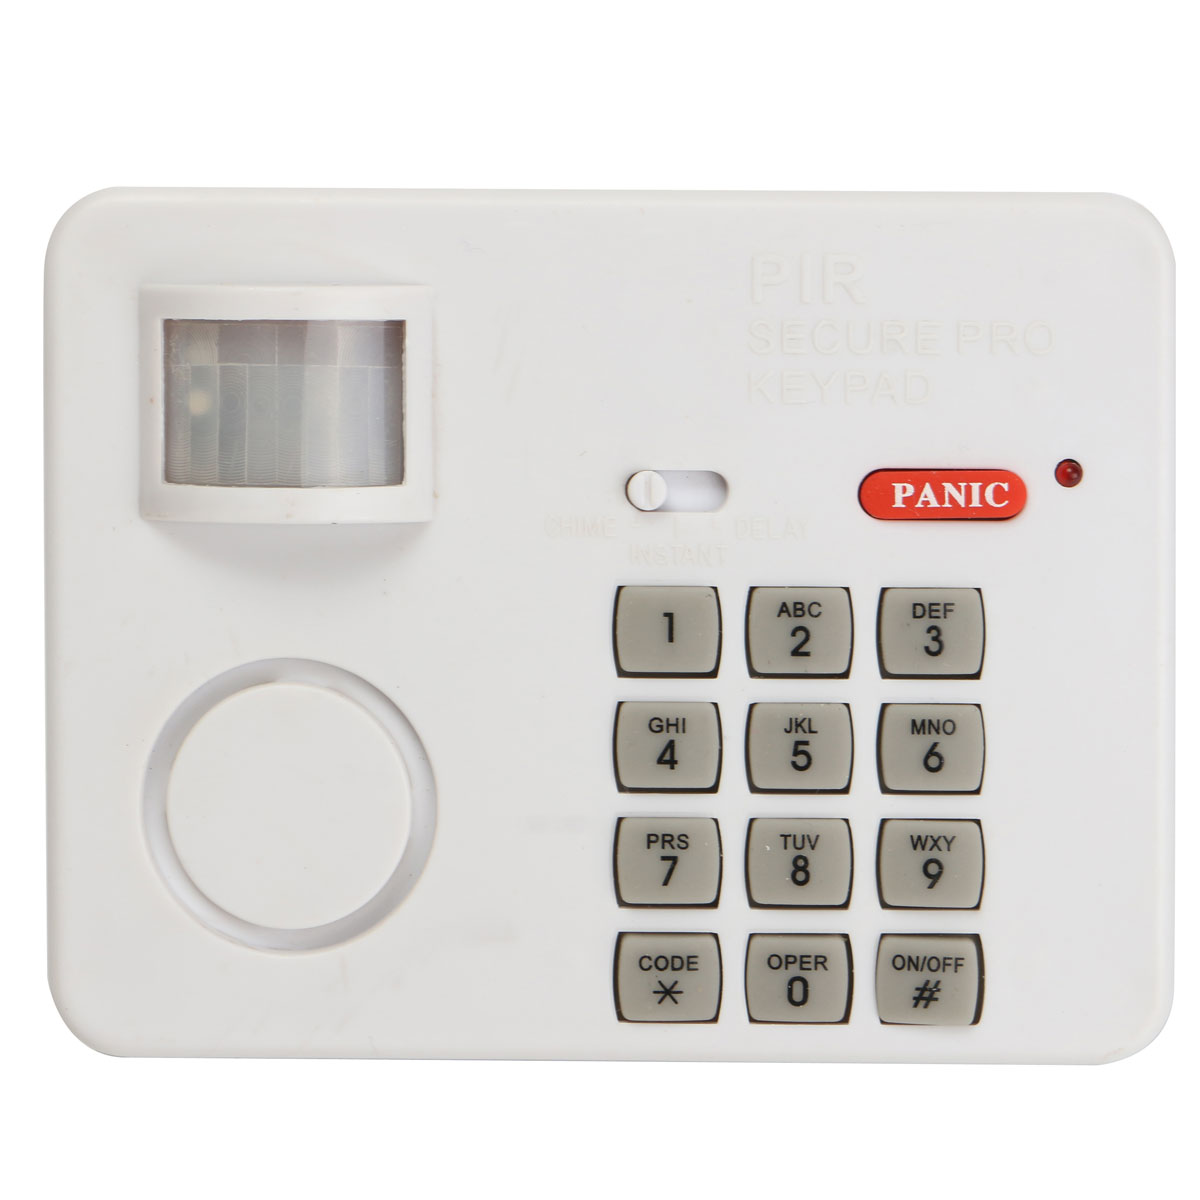 New Arrival Alarm Pir Security Keypad Wireless Motion Sensor(China (Mainland))